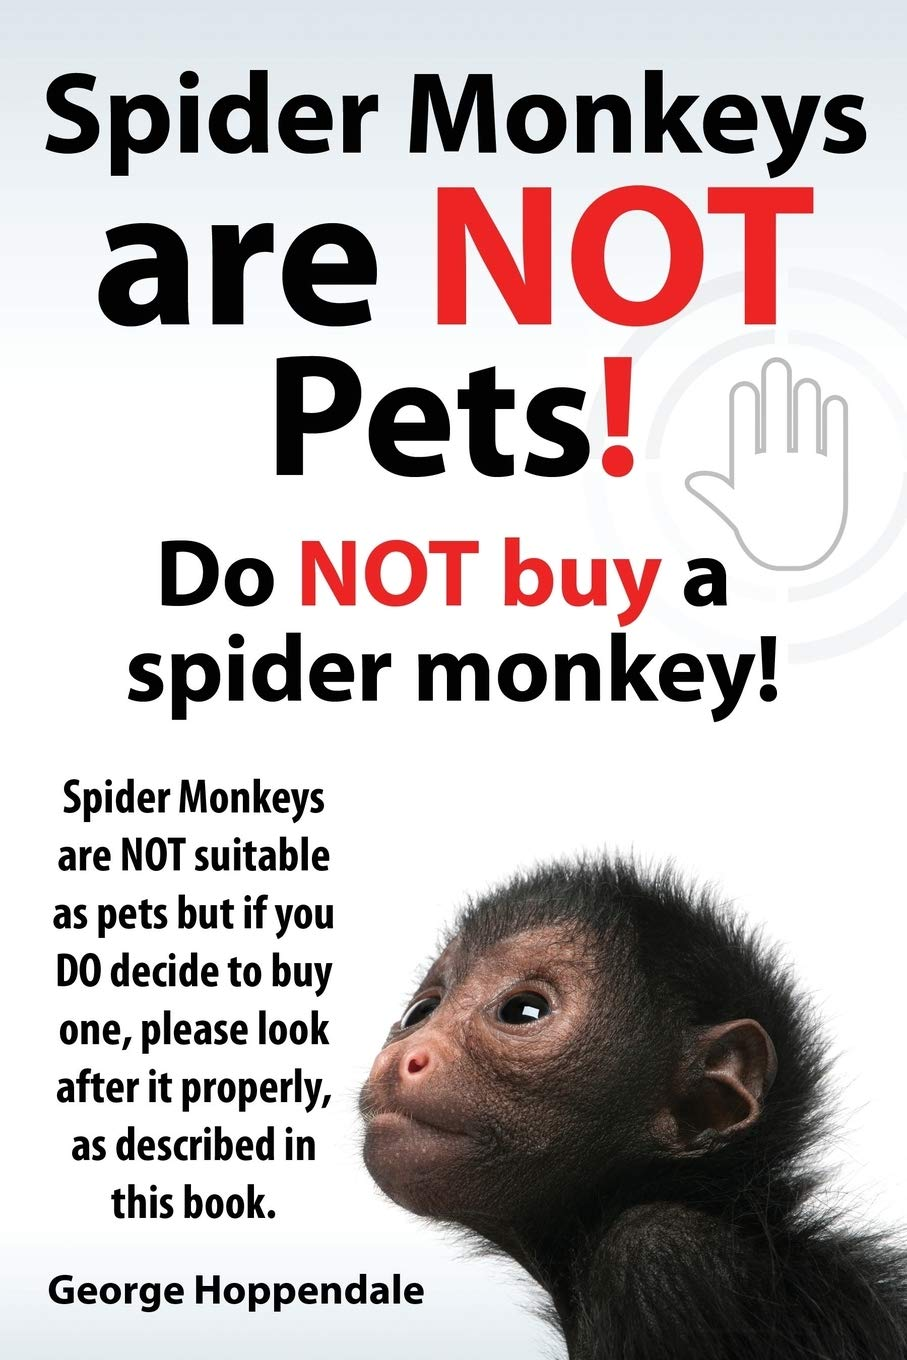 Spider Monkeys Are Not Pets Do Not Buy A Spider Monkey Spider Monkeys Are Not Suitable As Pets But If You Do Decide To Buy One Please Look After It Amazon In Hoppendale